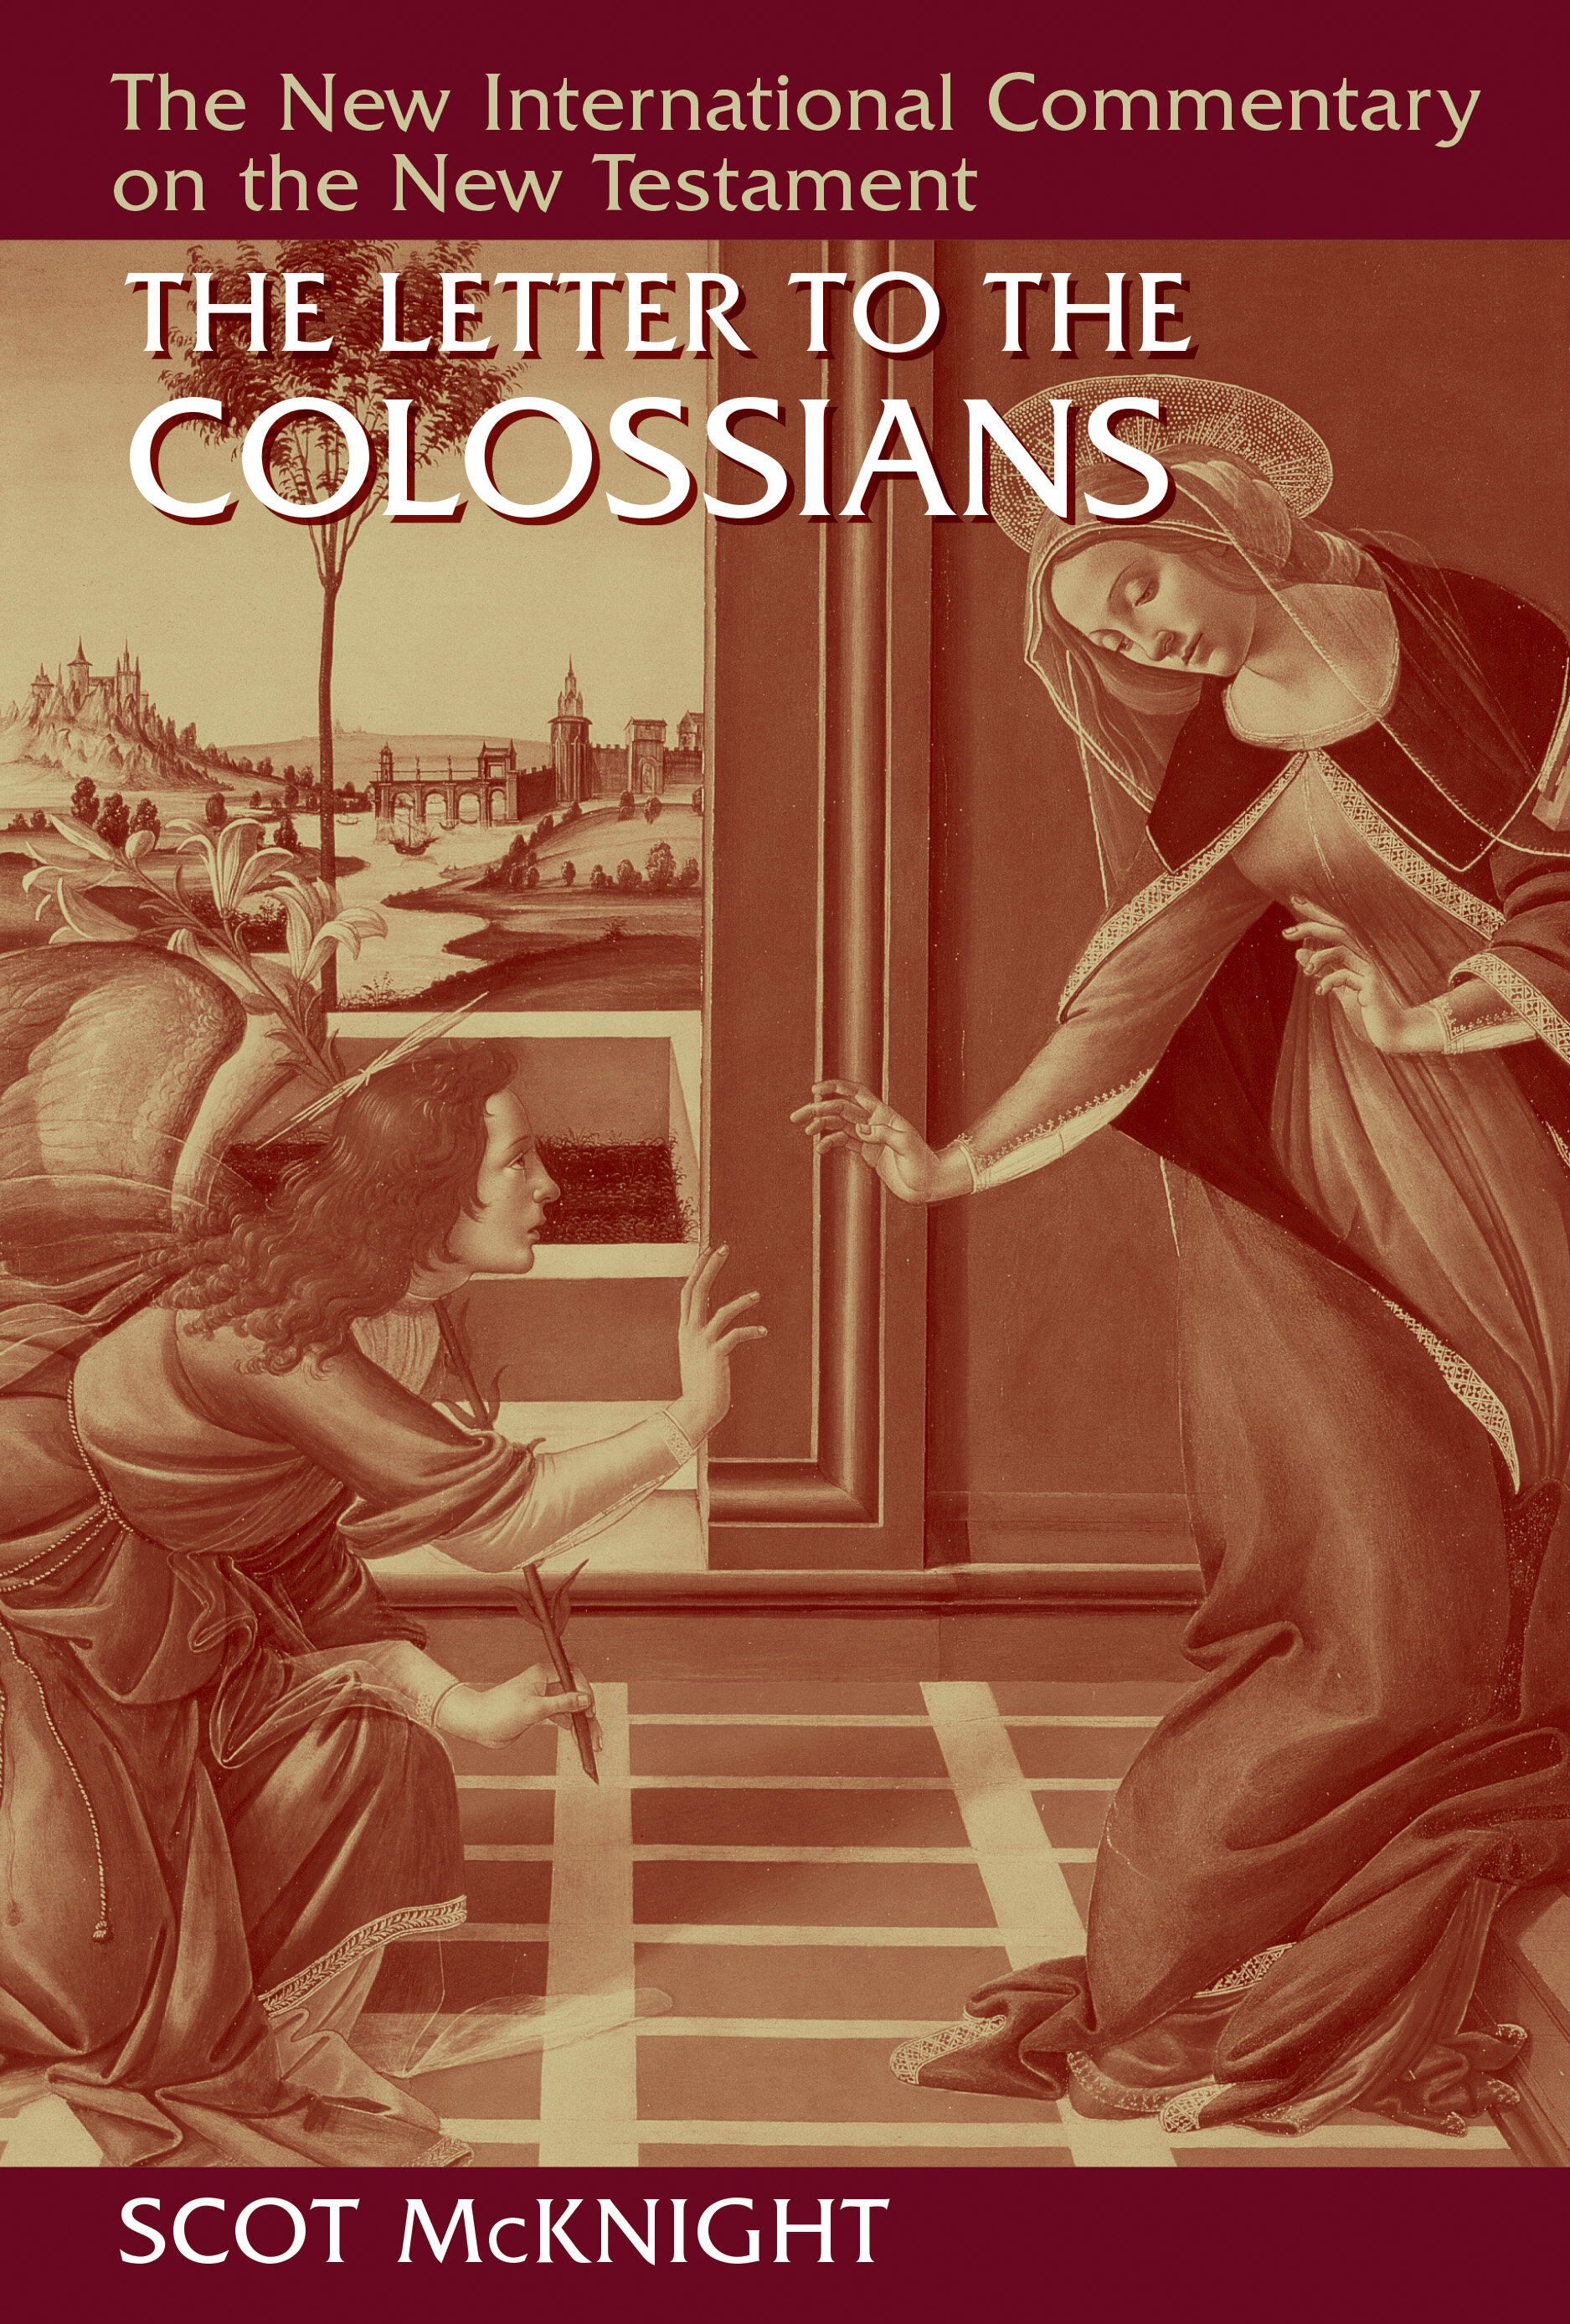 The Letter to the Colossians (The New International Commentary on the New Testament | NICNT)